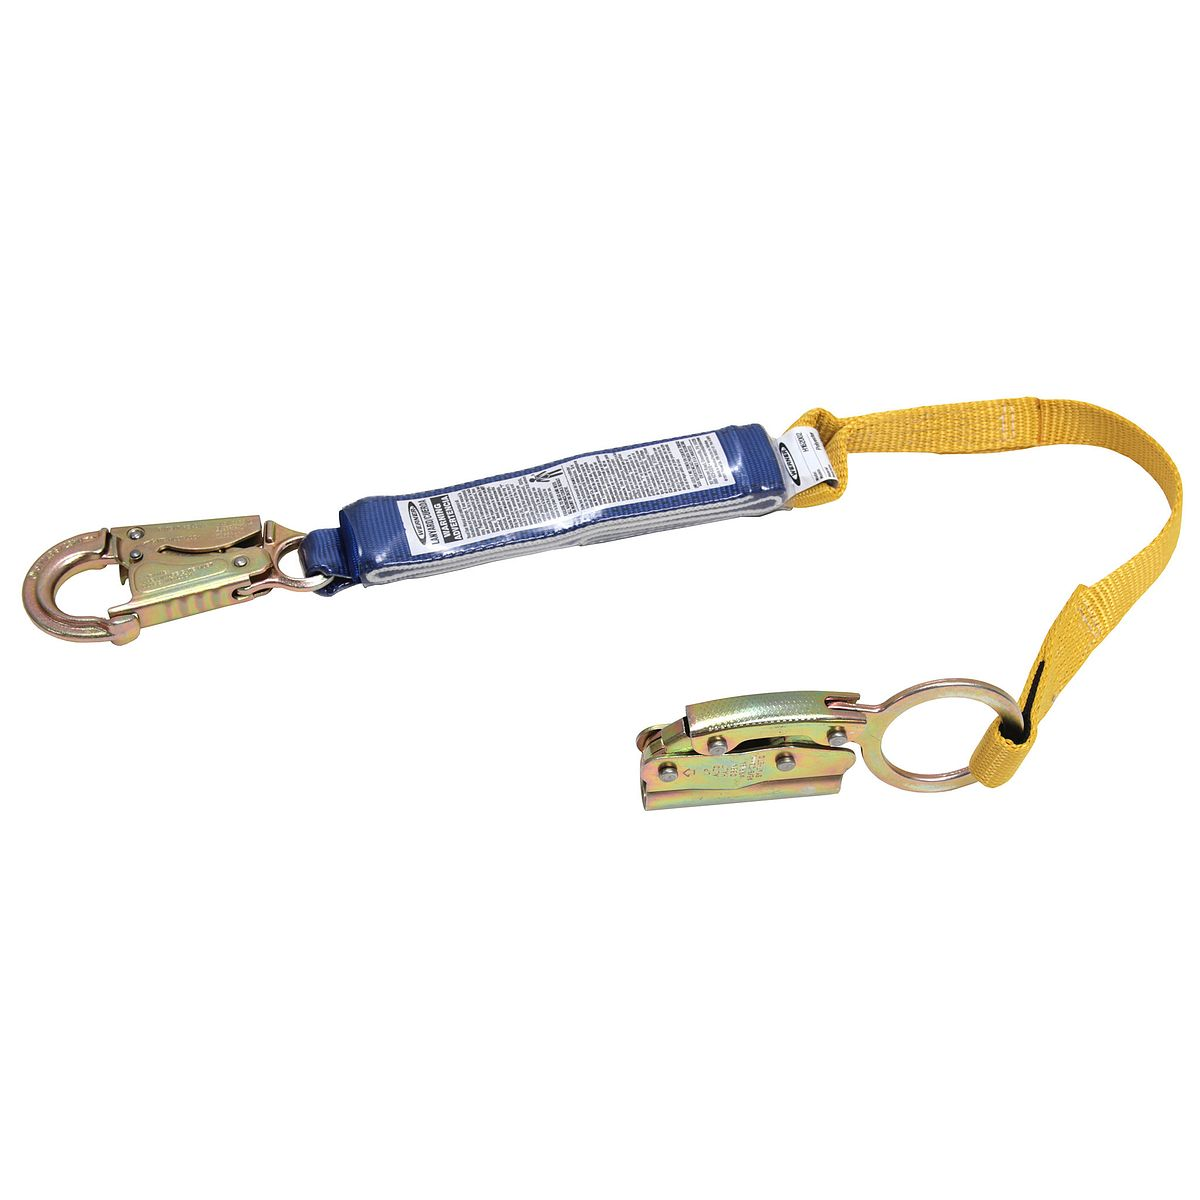 L210101 Fall Protection Werner Us